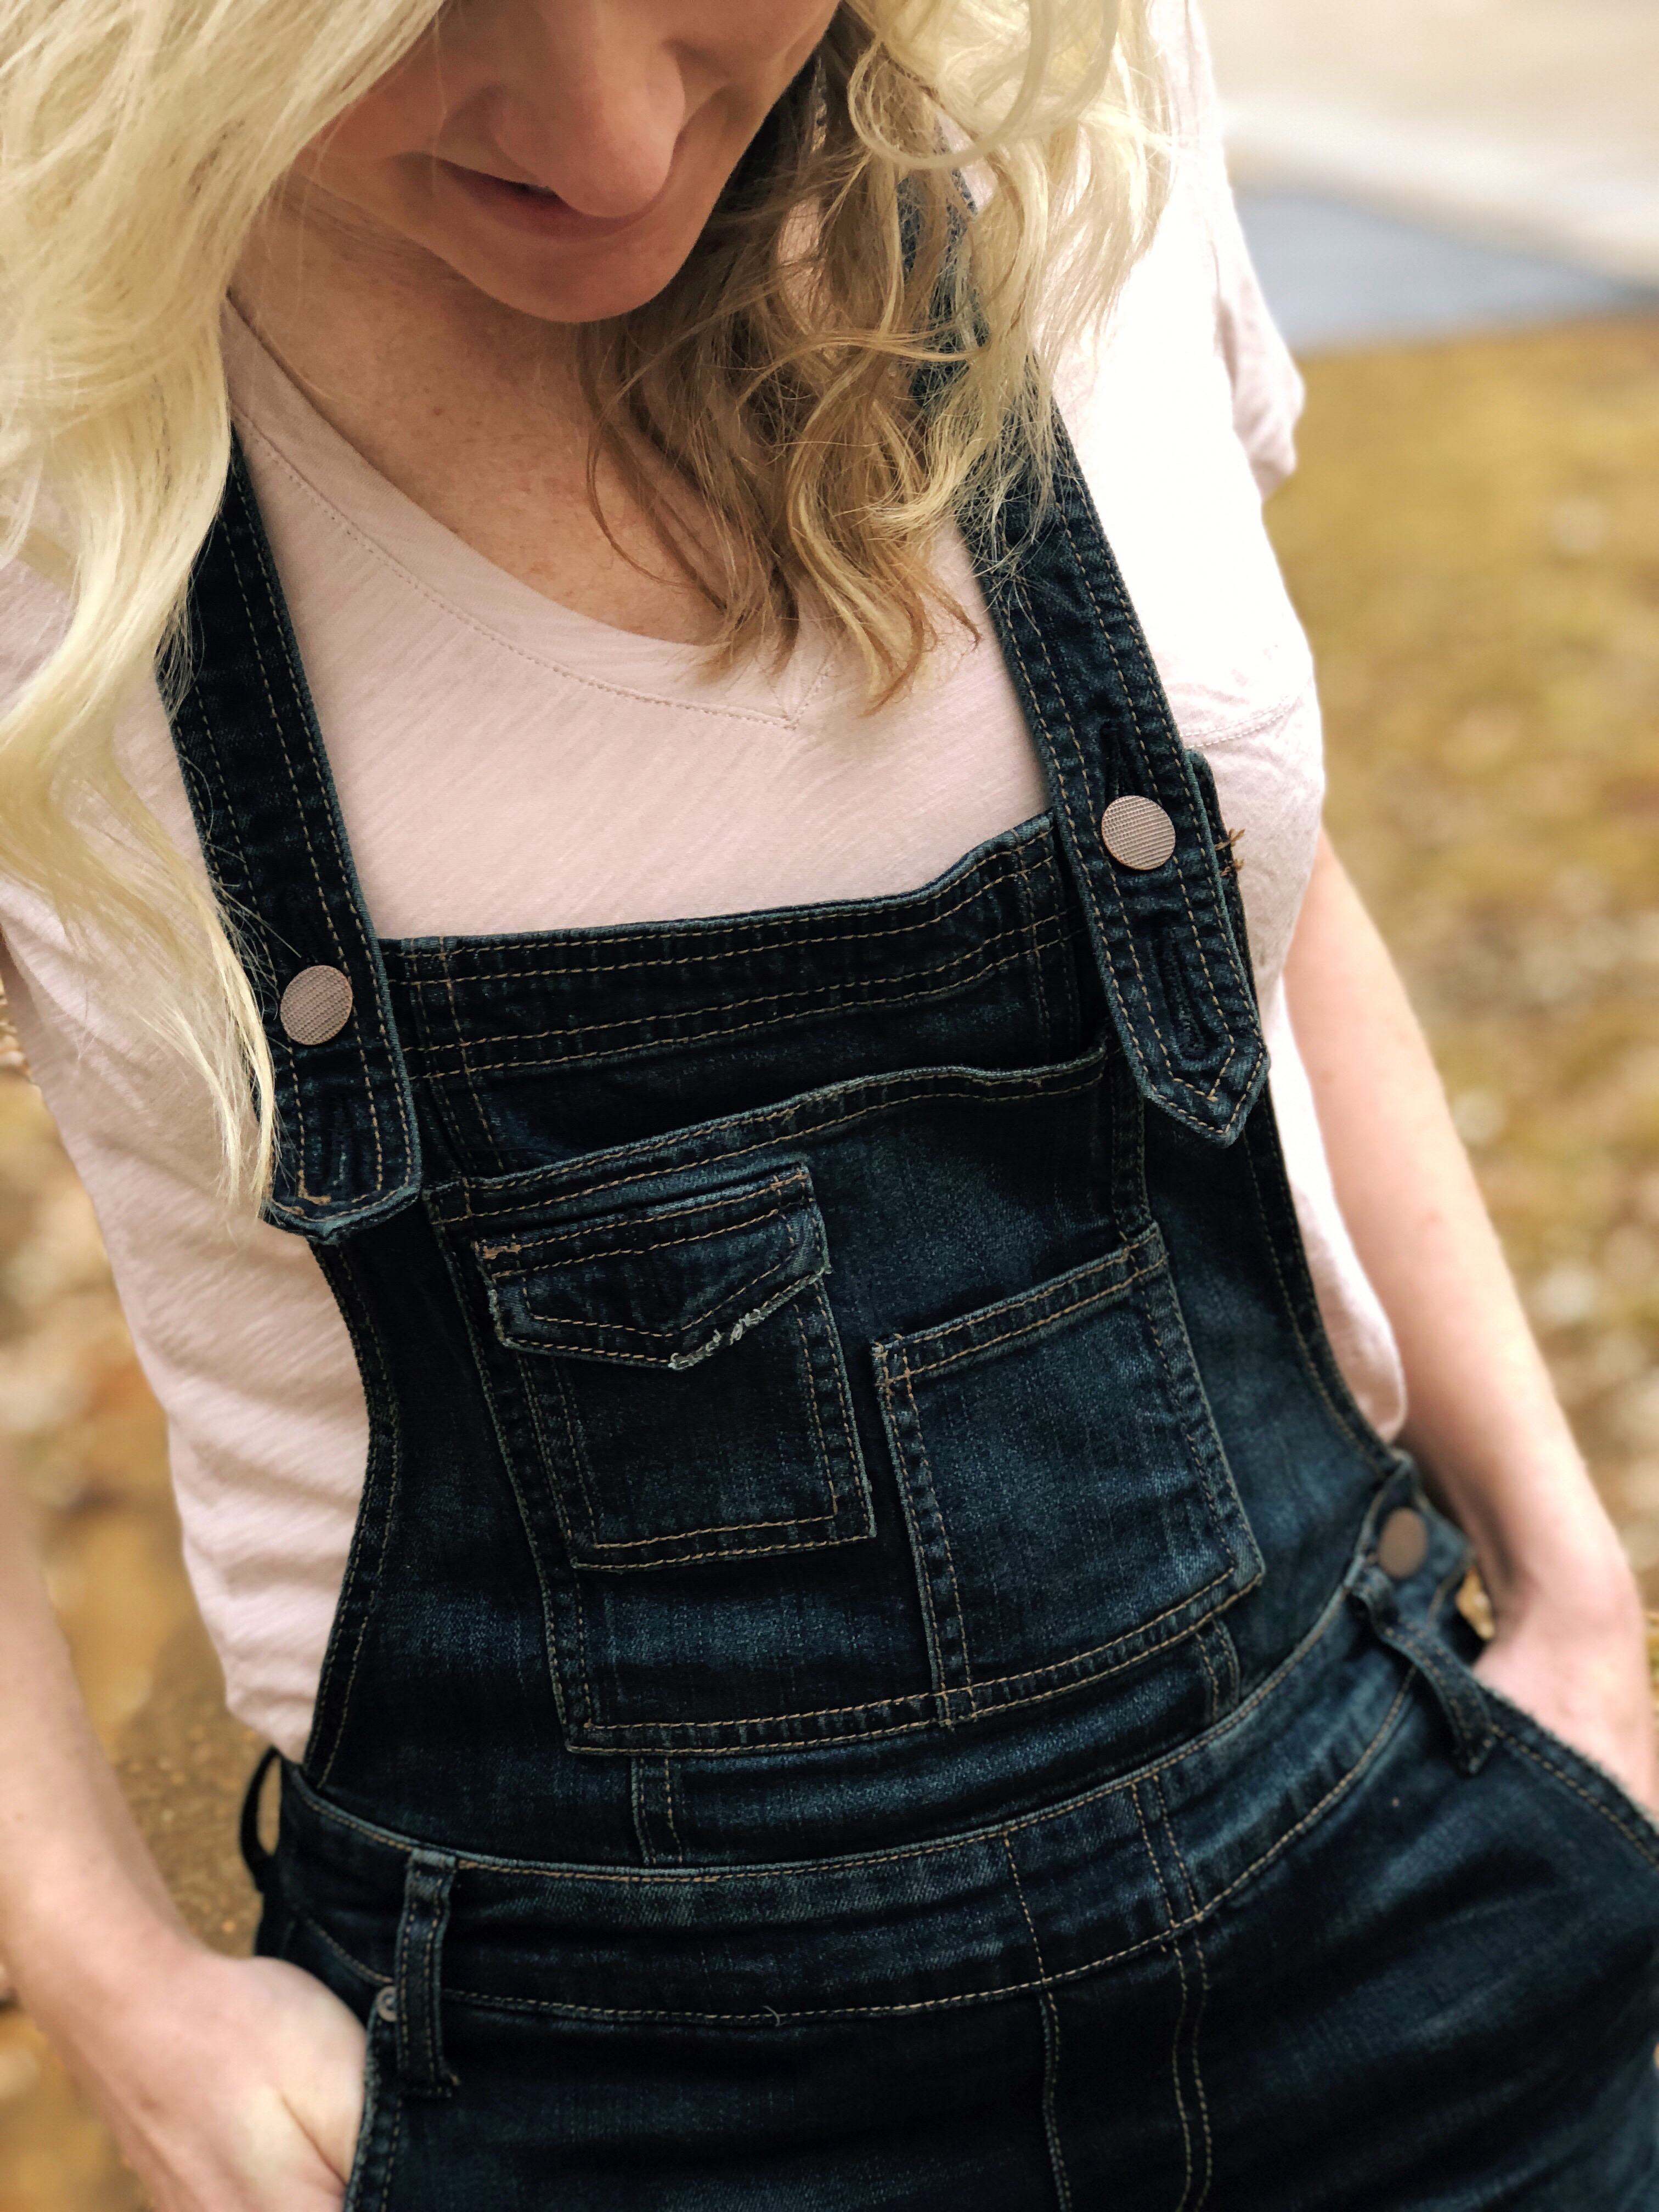 free people brady wash denim overalls  | How to style Free People Overalls featured by top Missouri fashion blogger, Emmy Lou Styles: with a plain tshirt